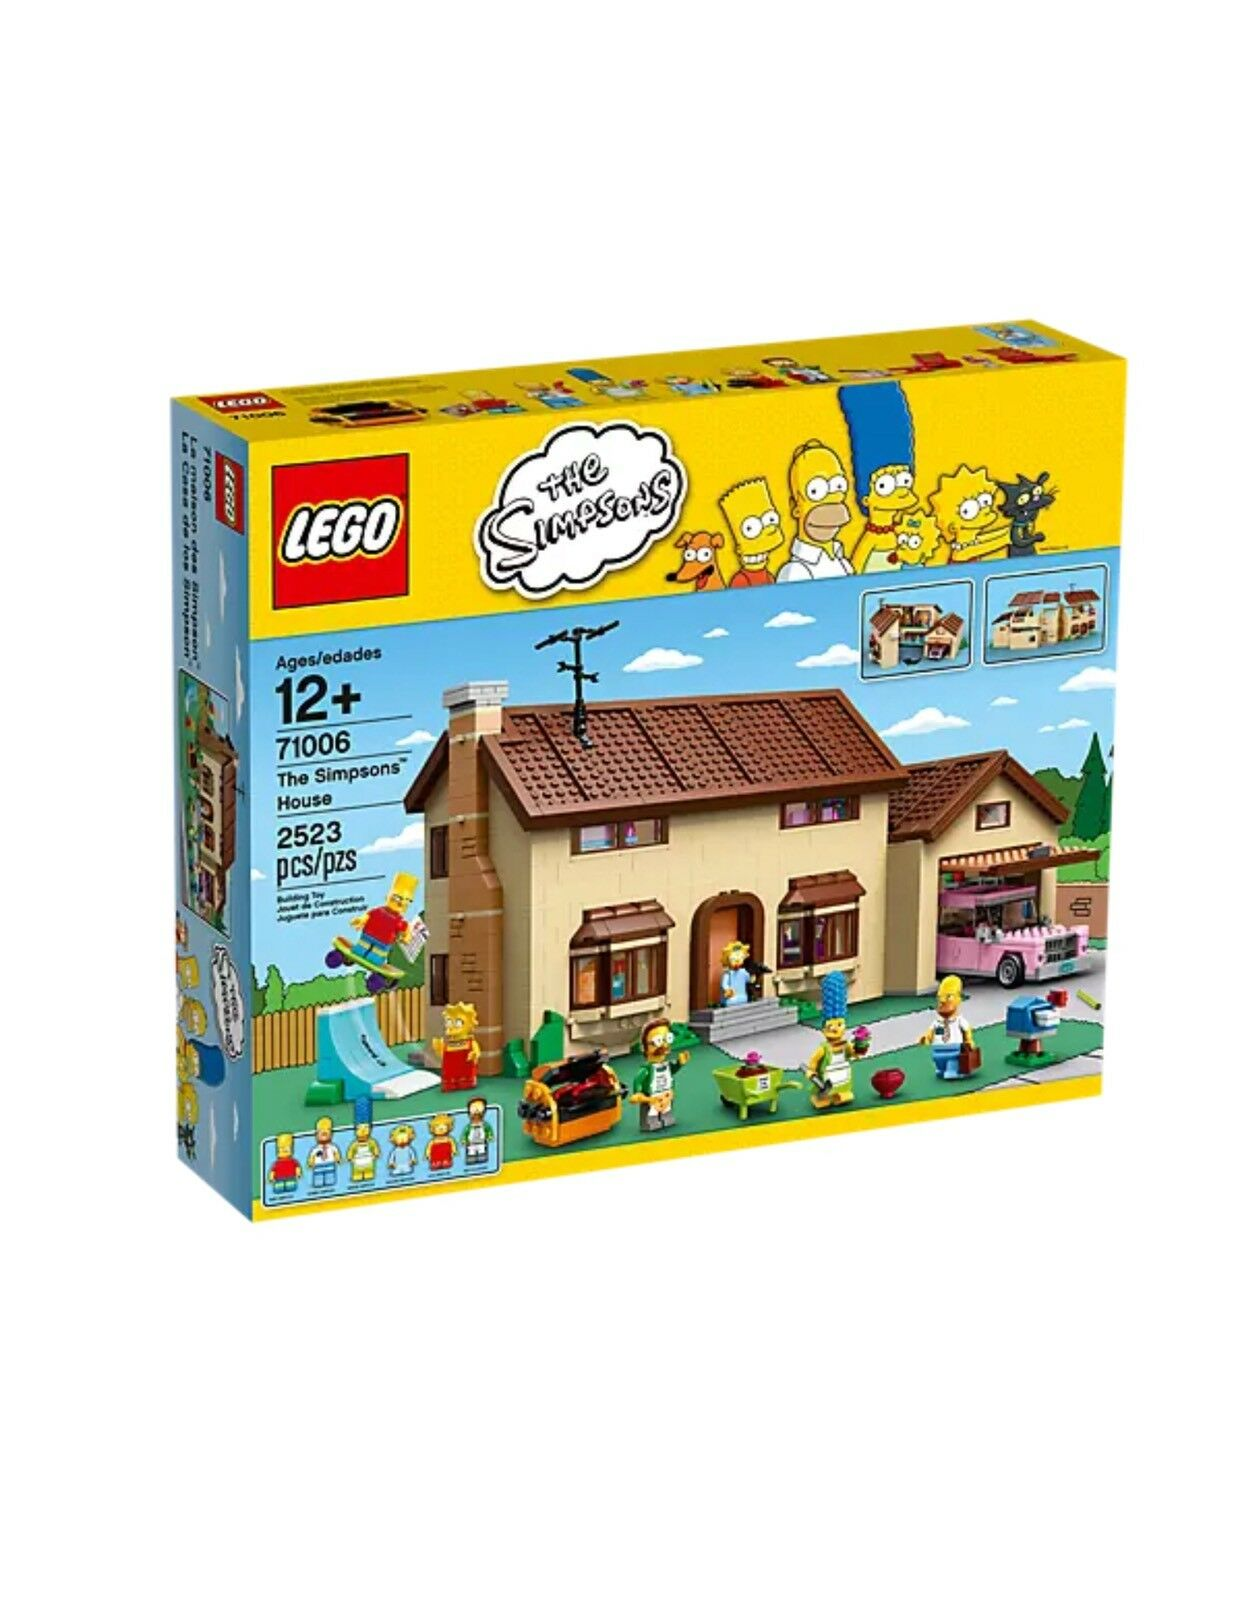 Lego The Simpsons 71006 The Simpsons House New Seaed Pensionerad